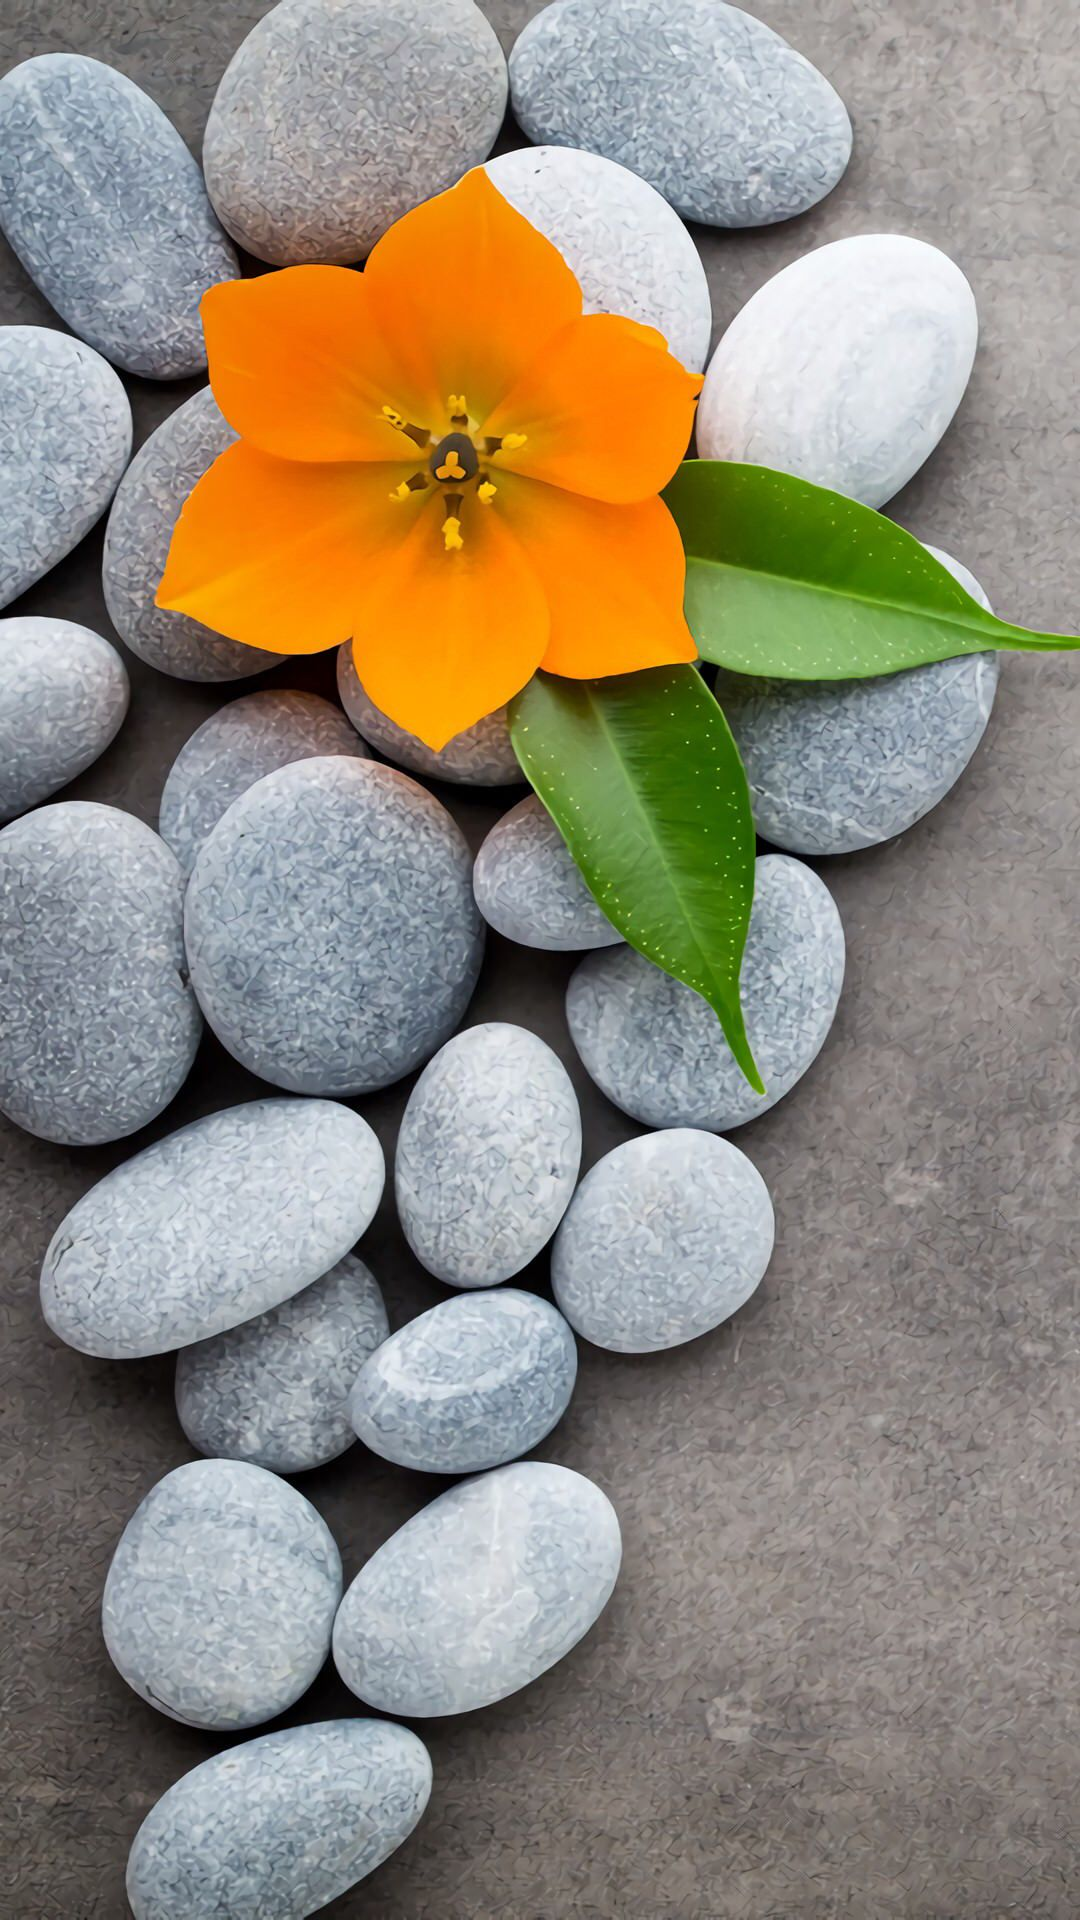 Stone And Flower Love Wallpaper Backgrounds Beautiful